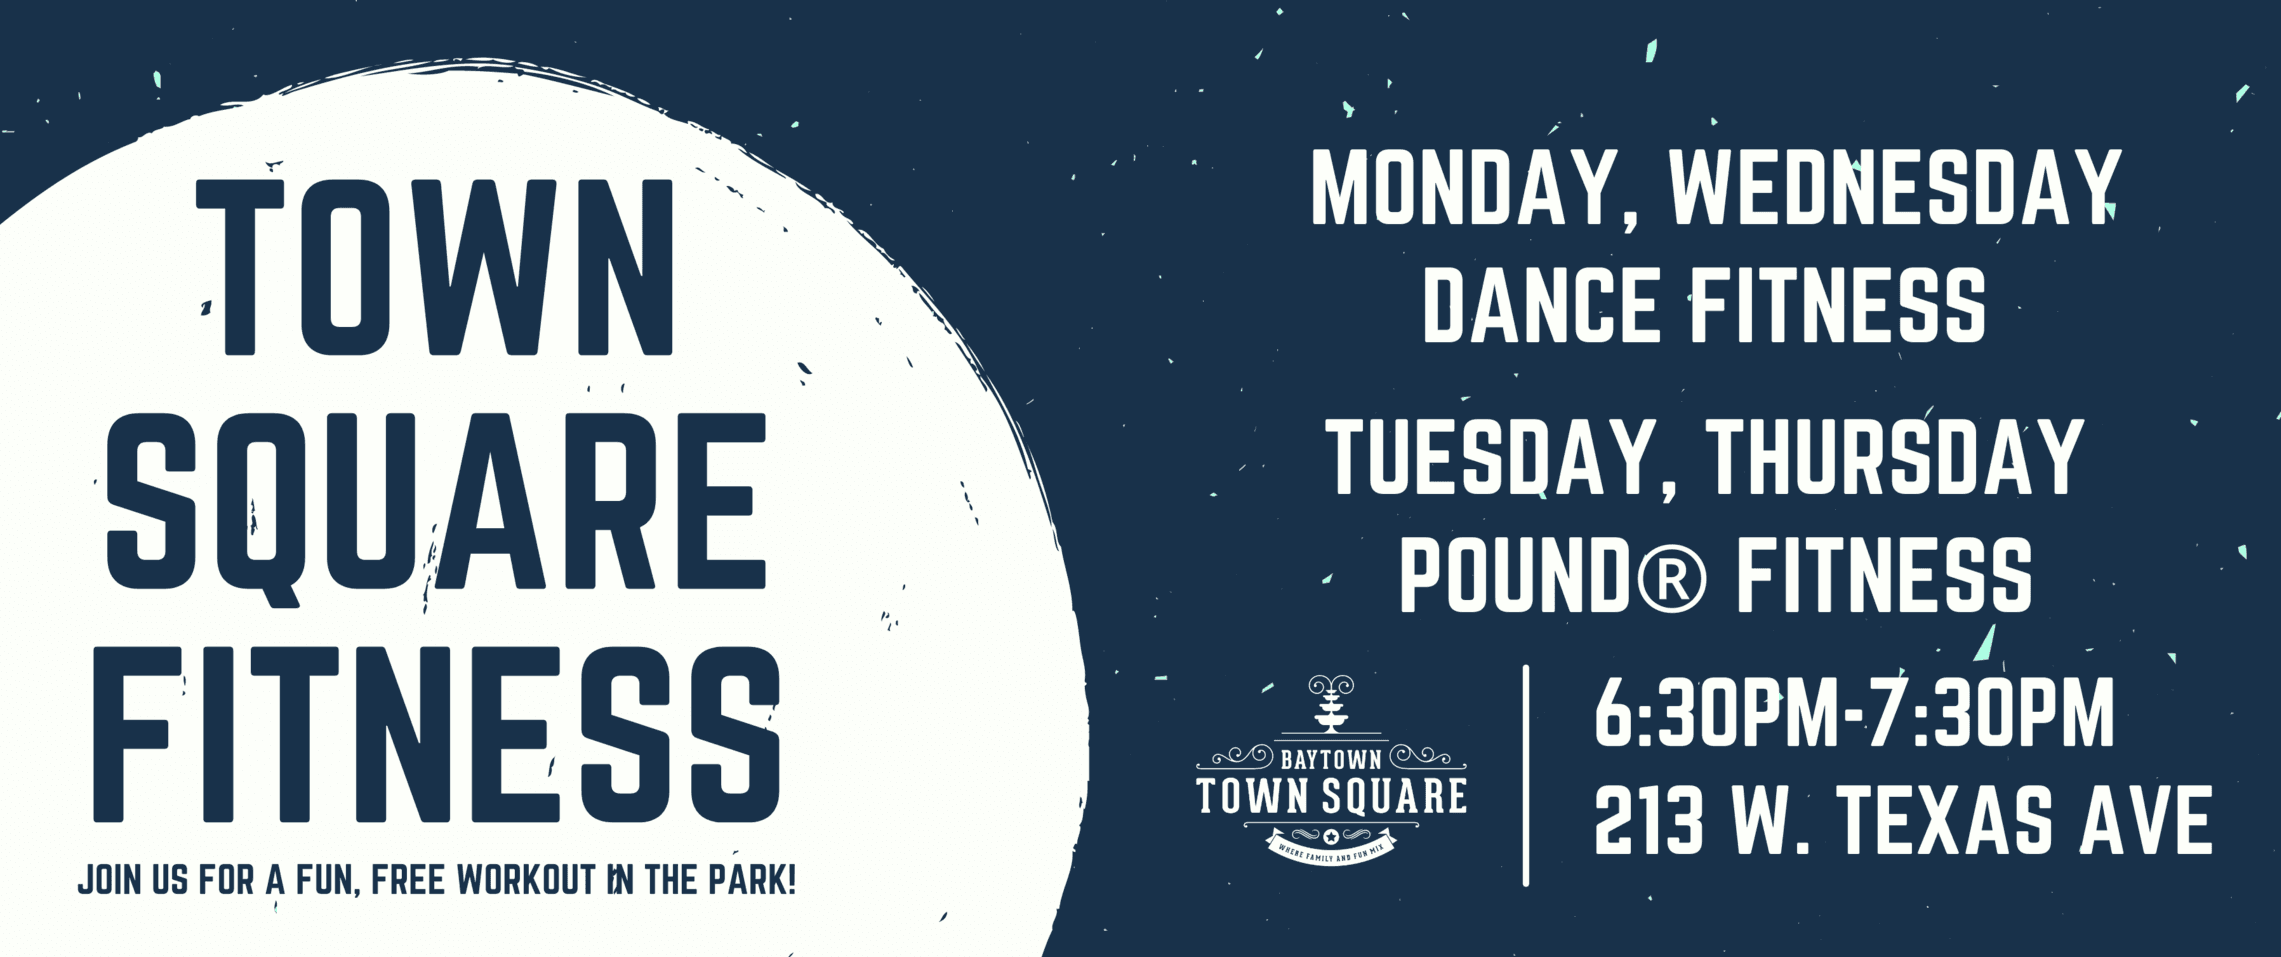 Town Square Fitness